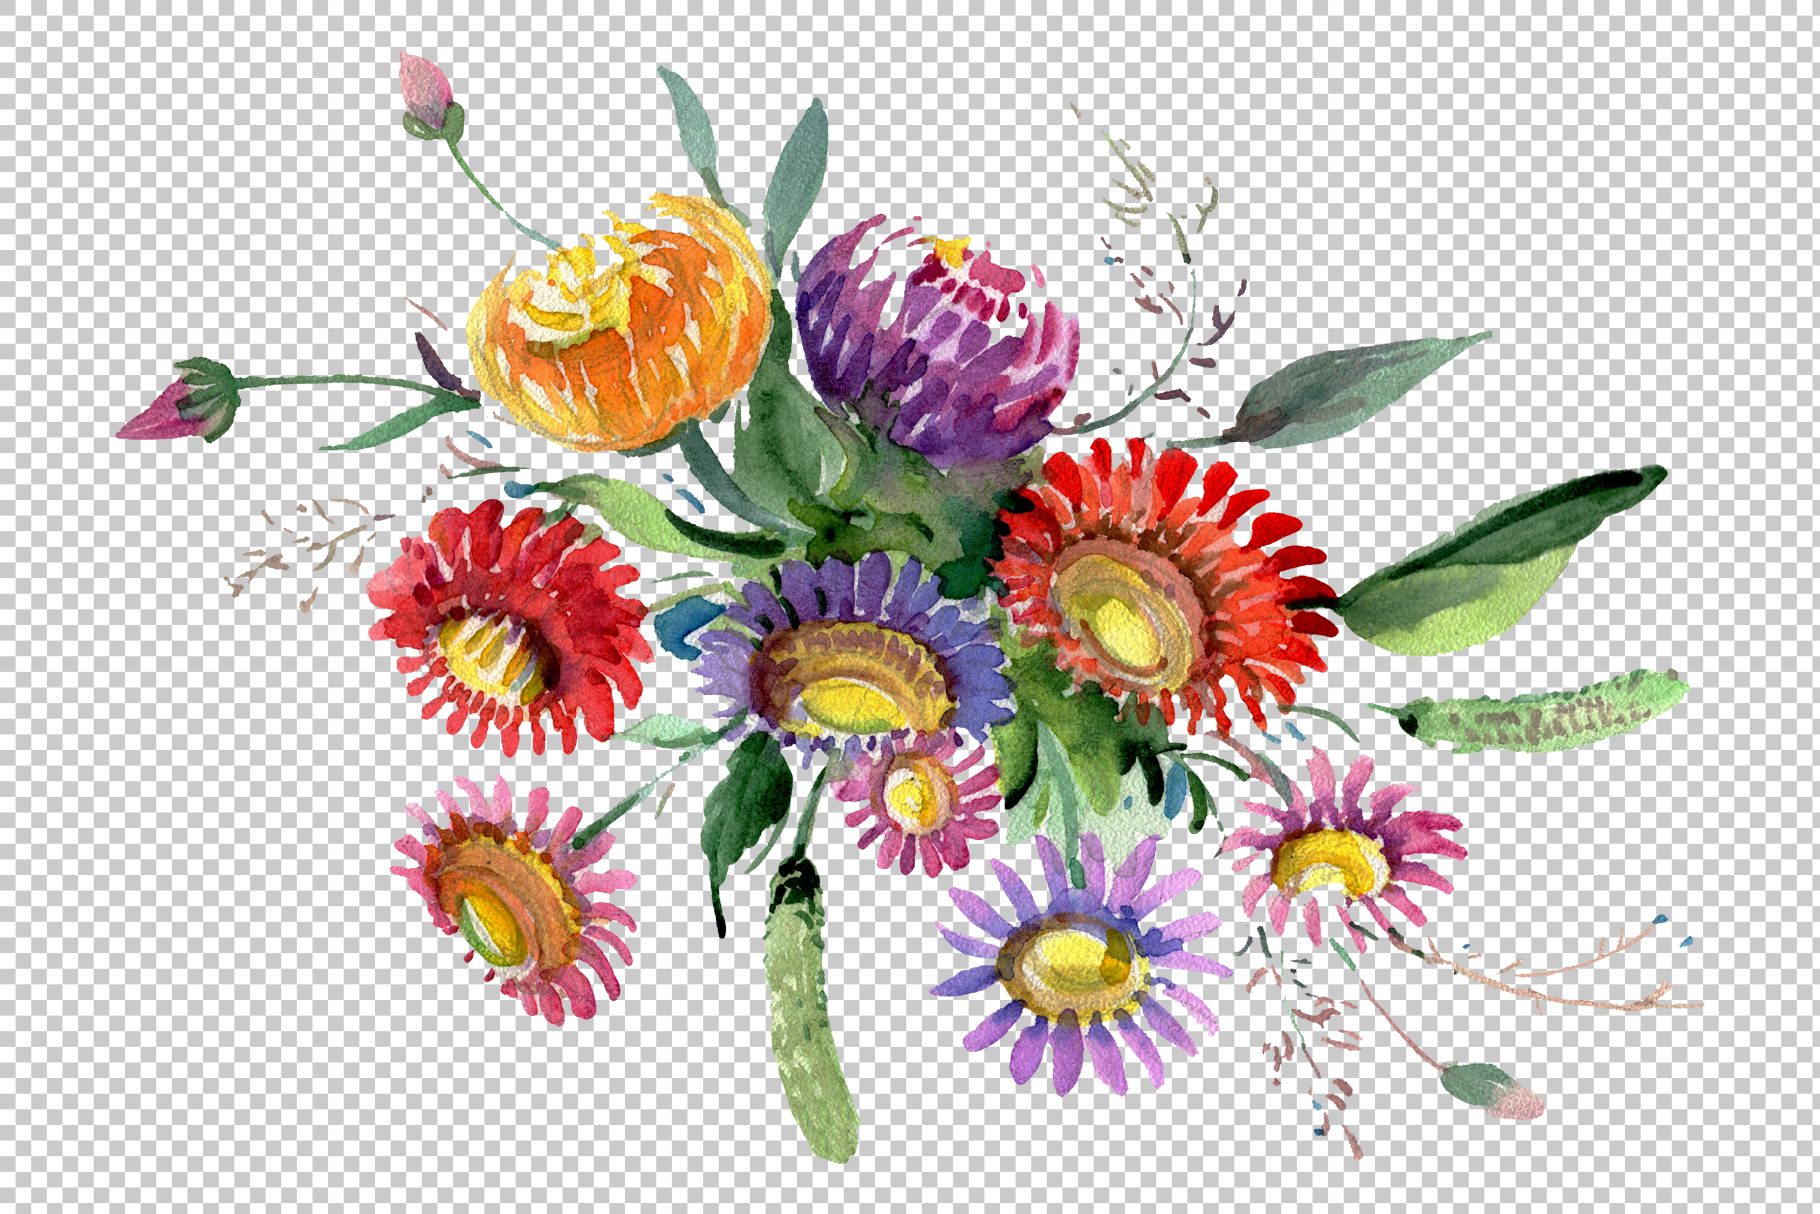 Bouquet of flowers matures feelings watercolor png example image 2